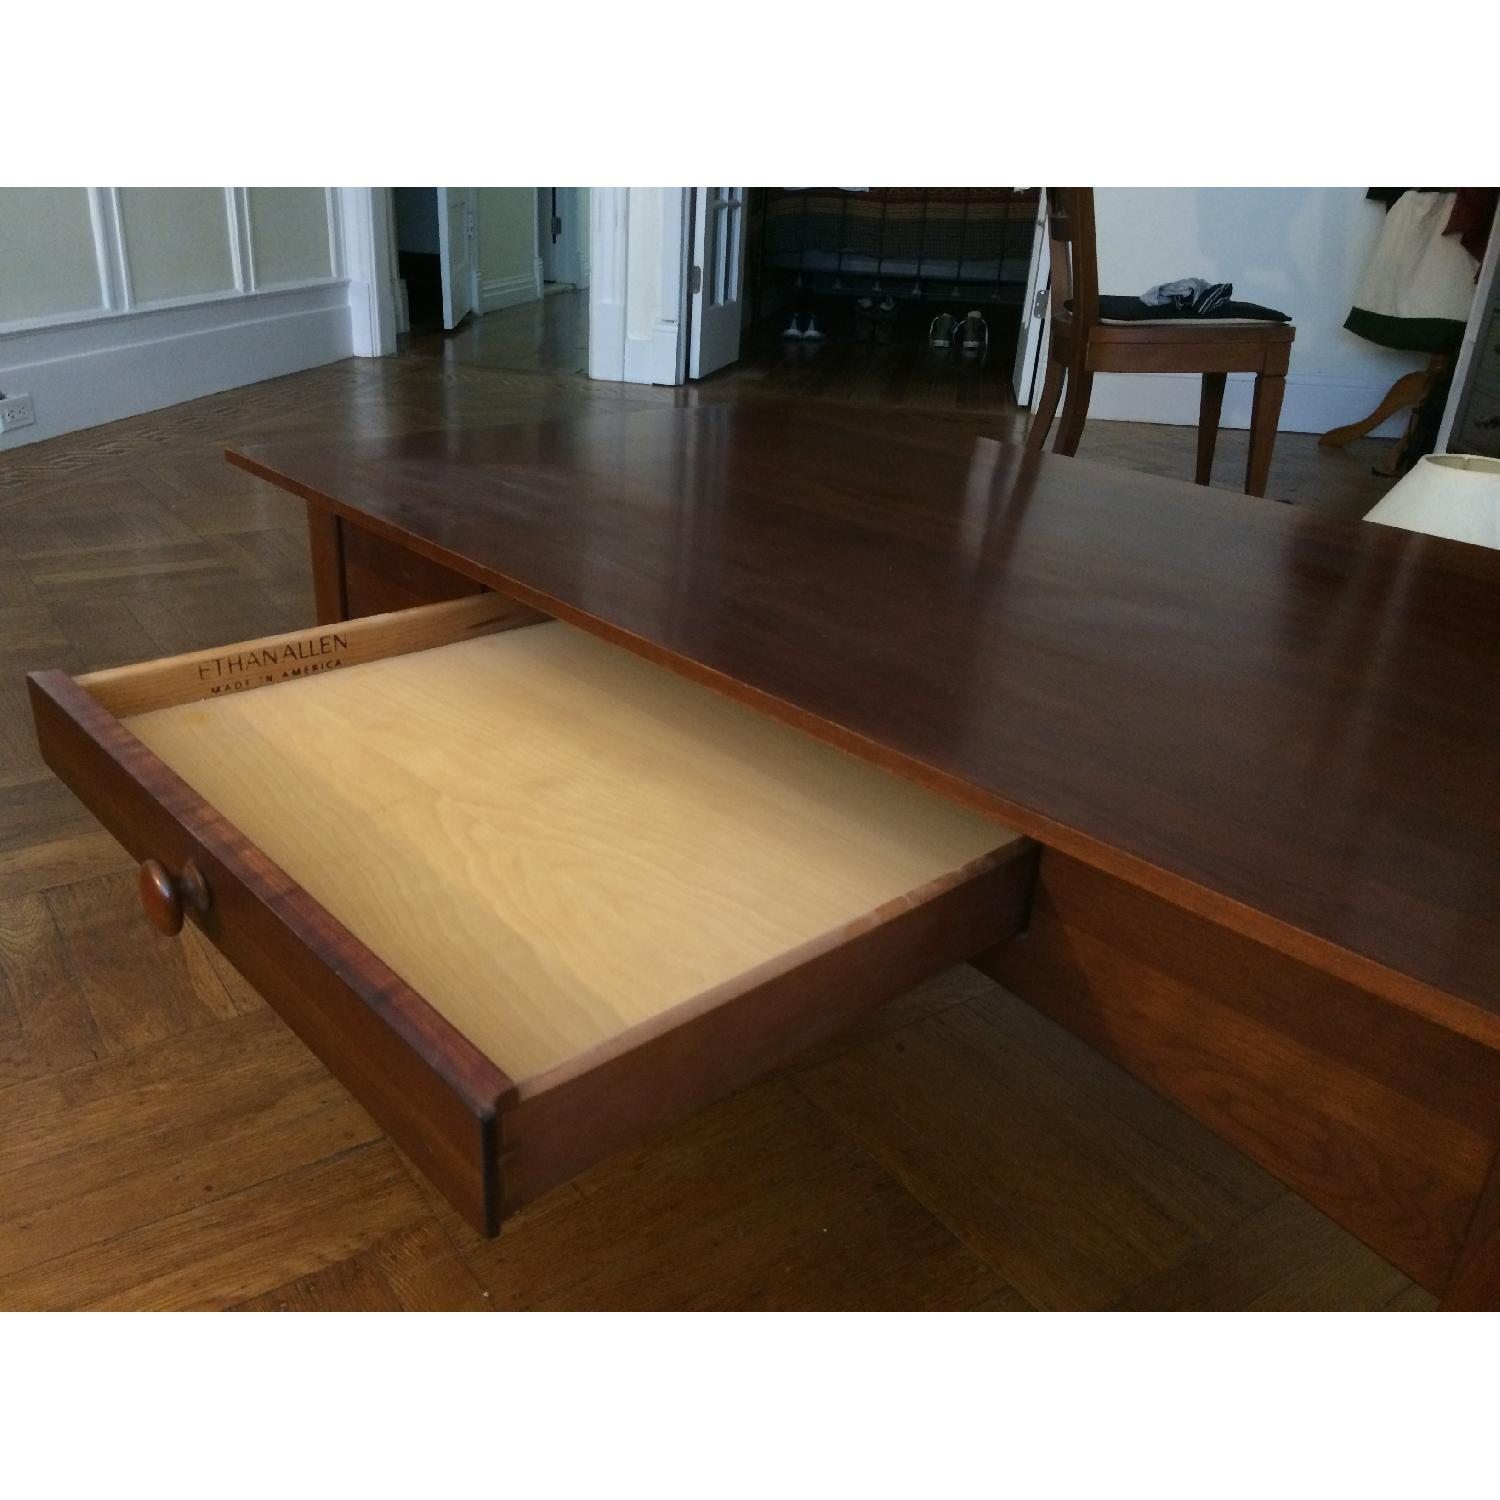 Ethan Allen Coffee Table w/ 1 Drawer-3